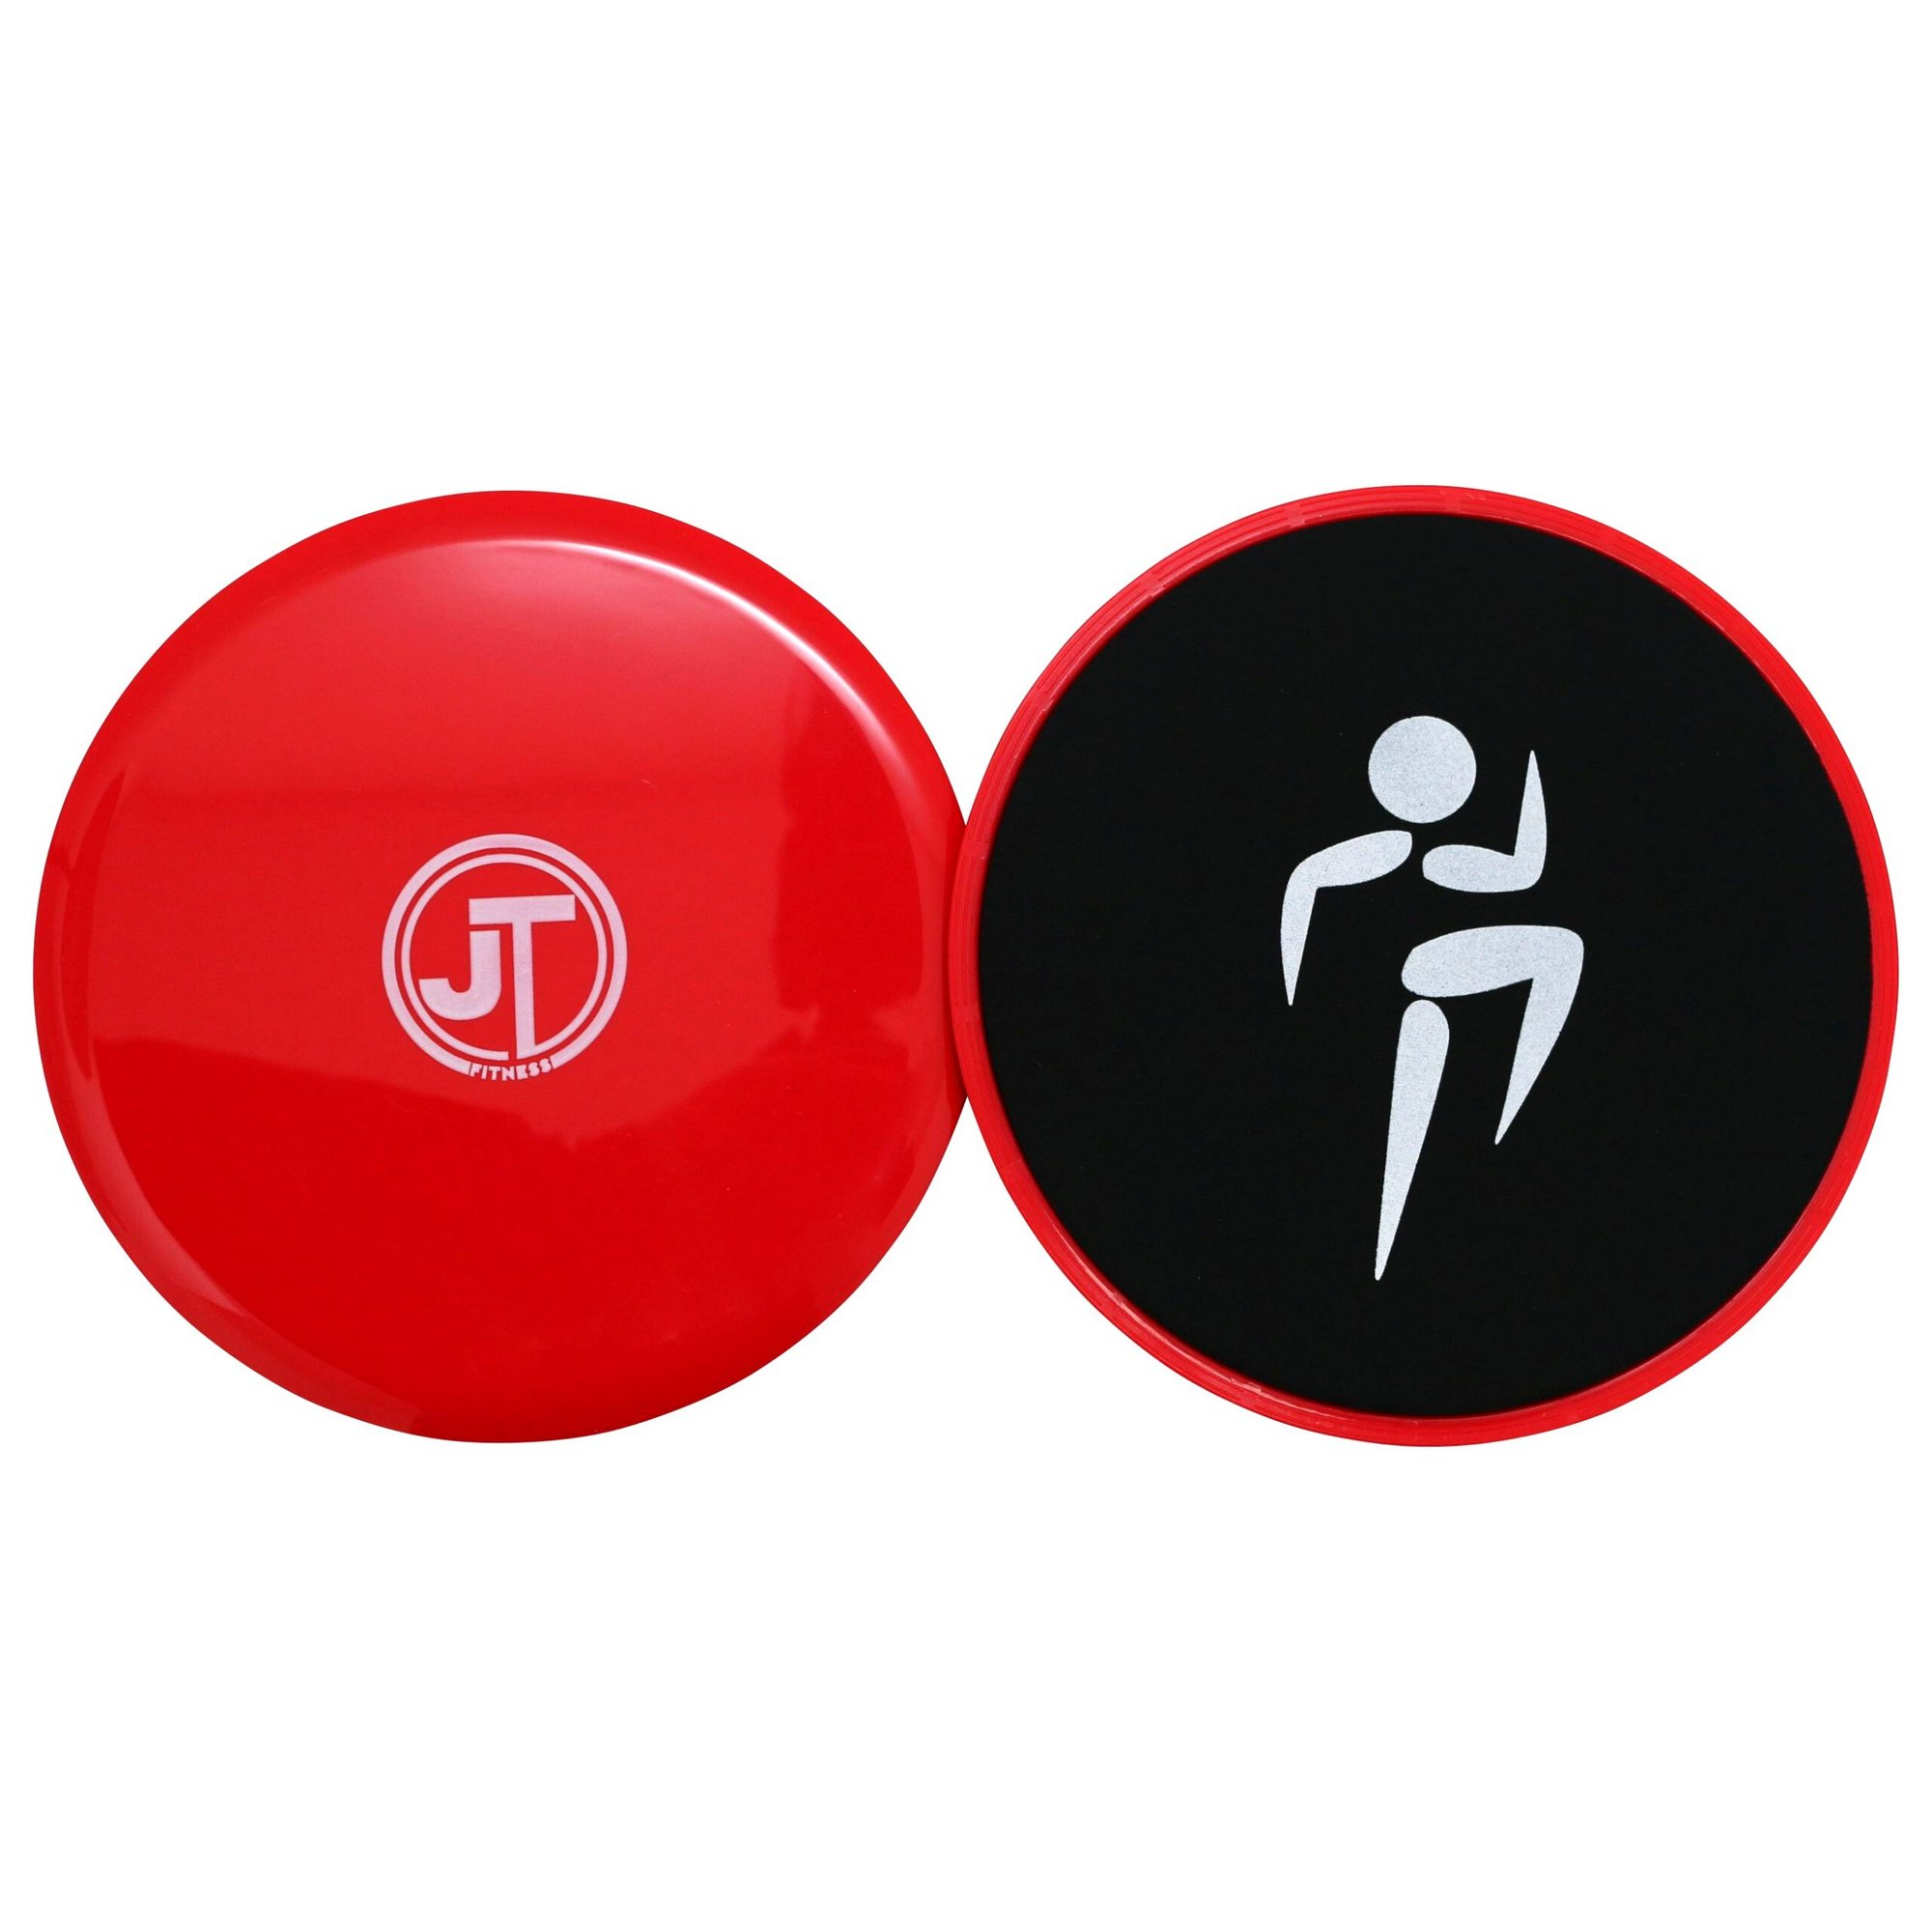 Image of JT Core Sliders Double Sided Discs